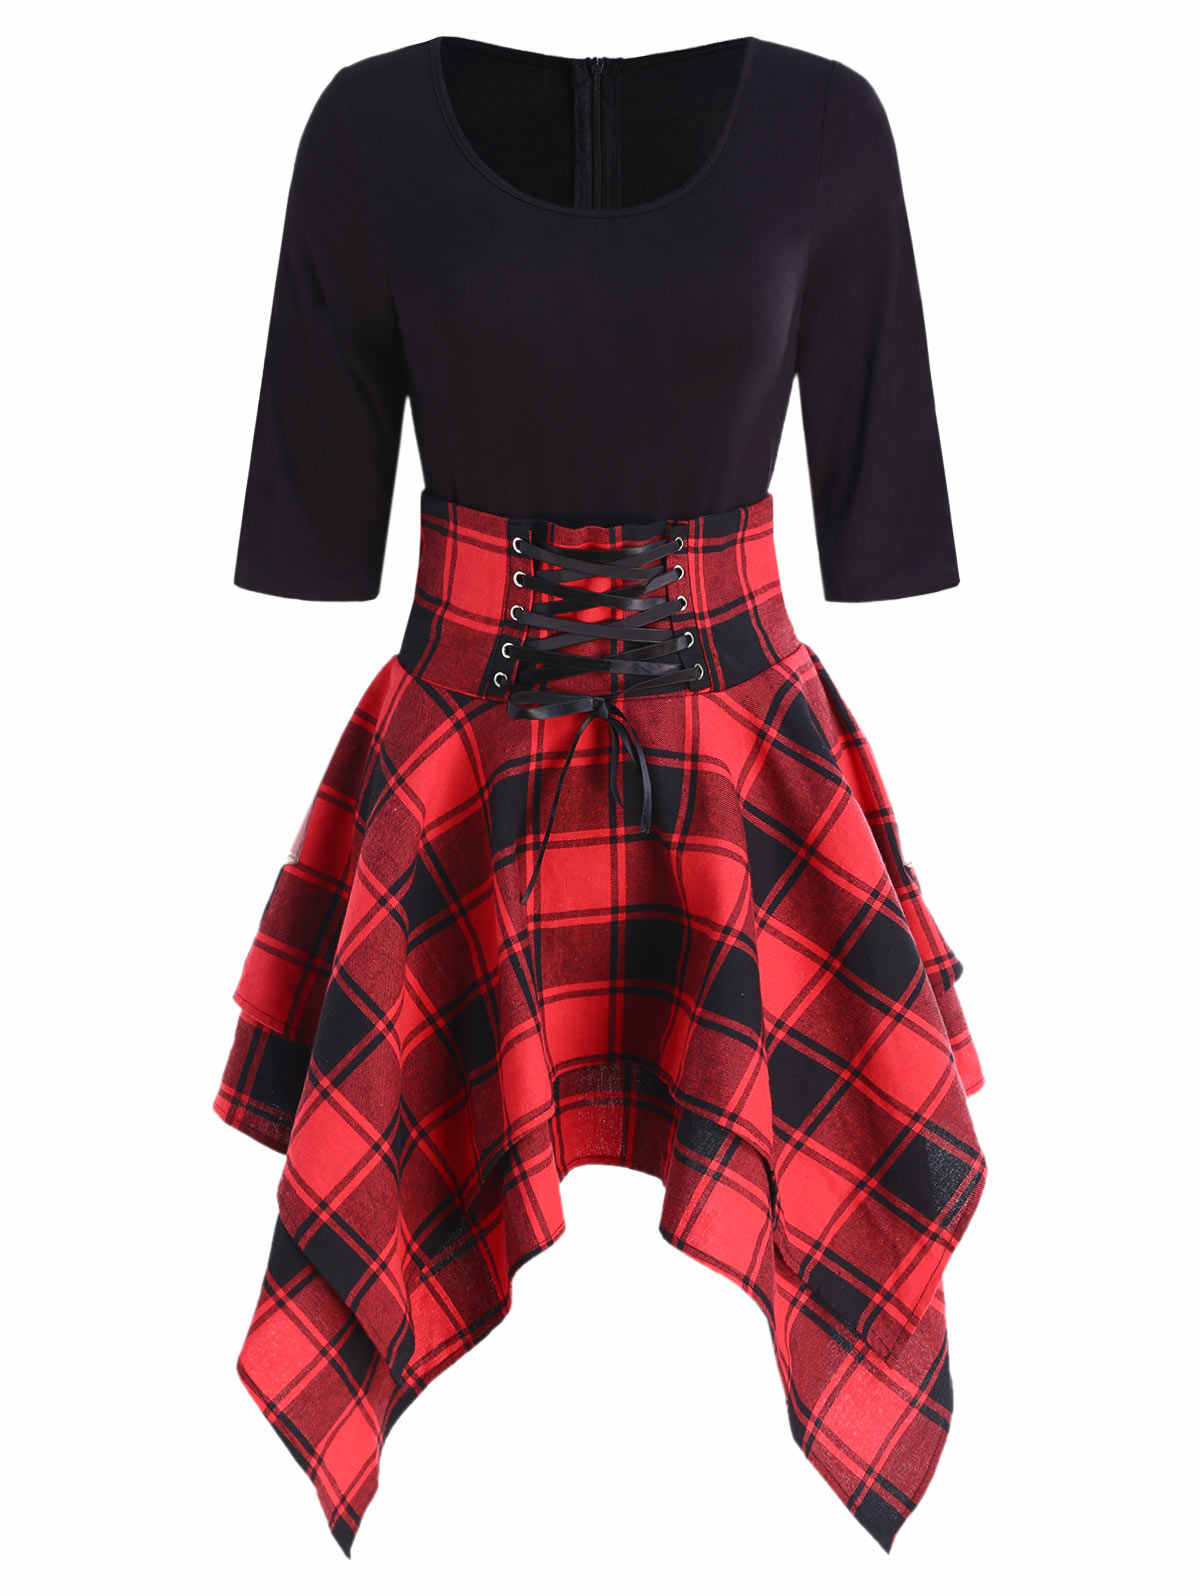 5ceeade6a5 Kenancy Lace Up Tartan Asymmetrical Dress Half Sleeves O-Neck Check Plaid  Women Vintage Dress